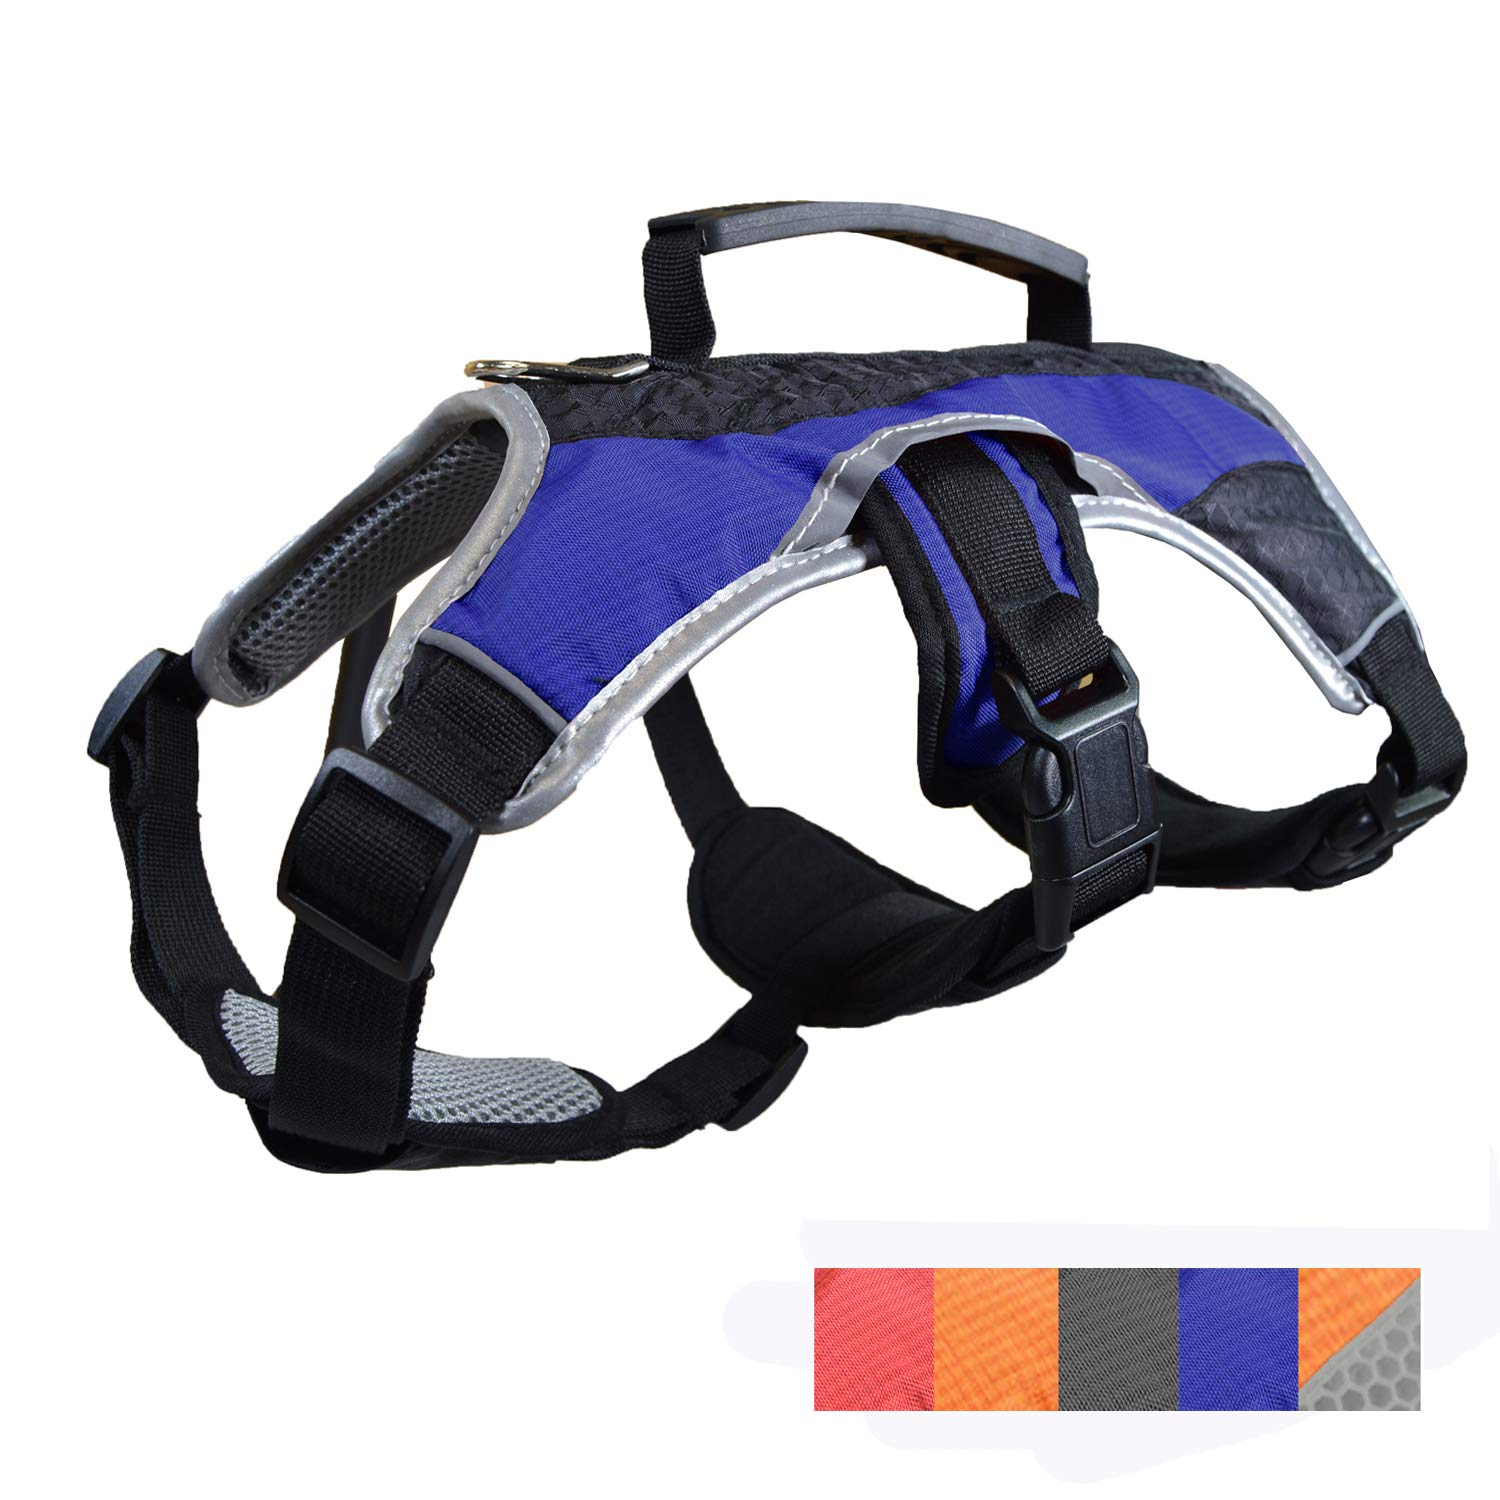 Dog Walking Lifting Carry Harness, Support Mesh Padded Vest, Accessory, Collar, Lightweight, No More Pulling, Tugging or Choking, for Puppies, Small Dogs (Blue, X-Large), by Downtown Pet Supply by Peak Pooch